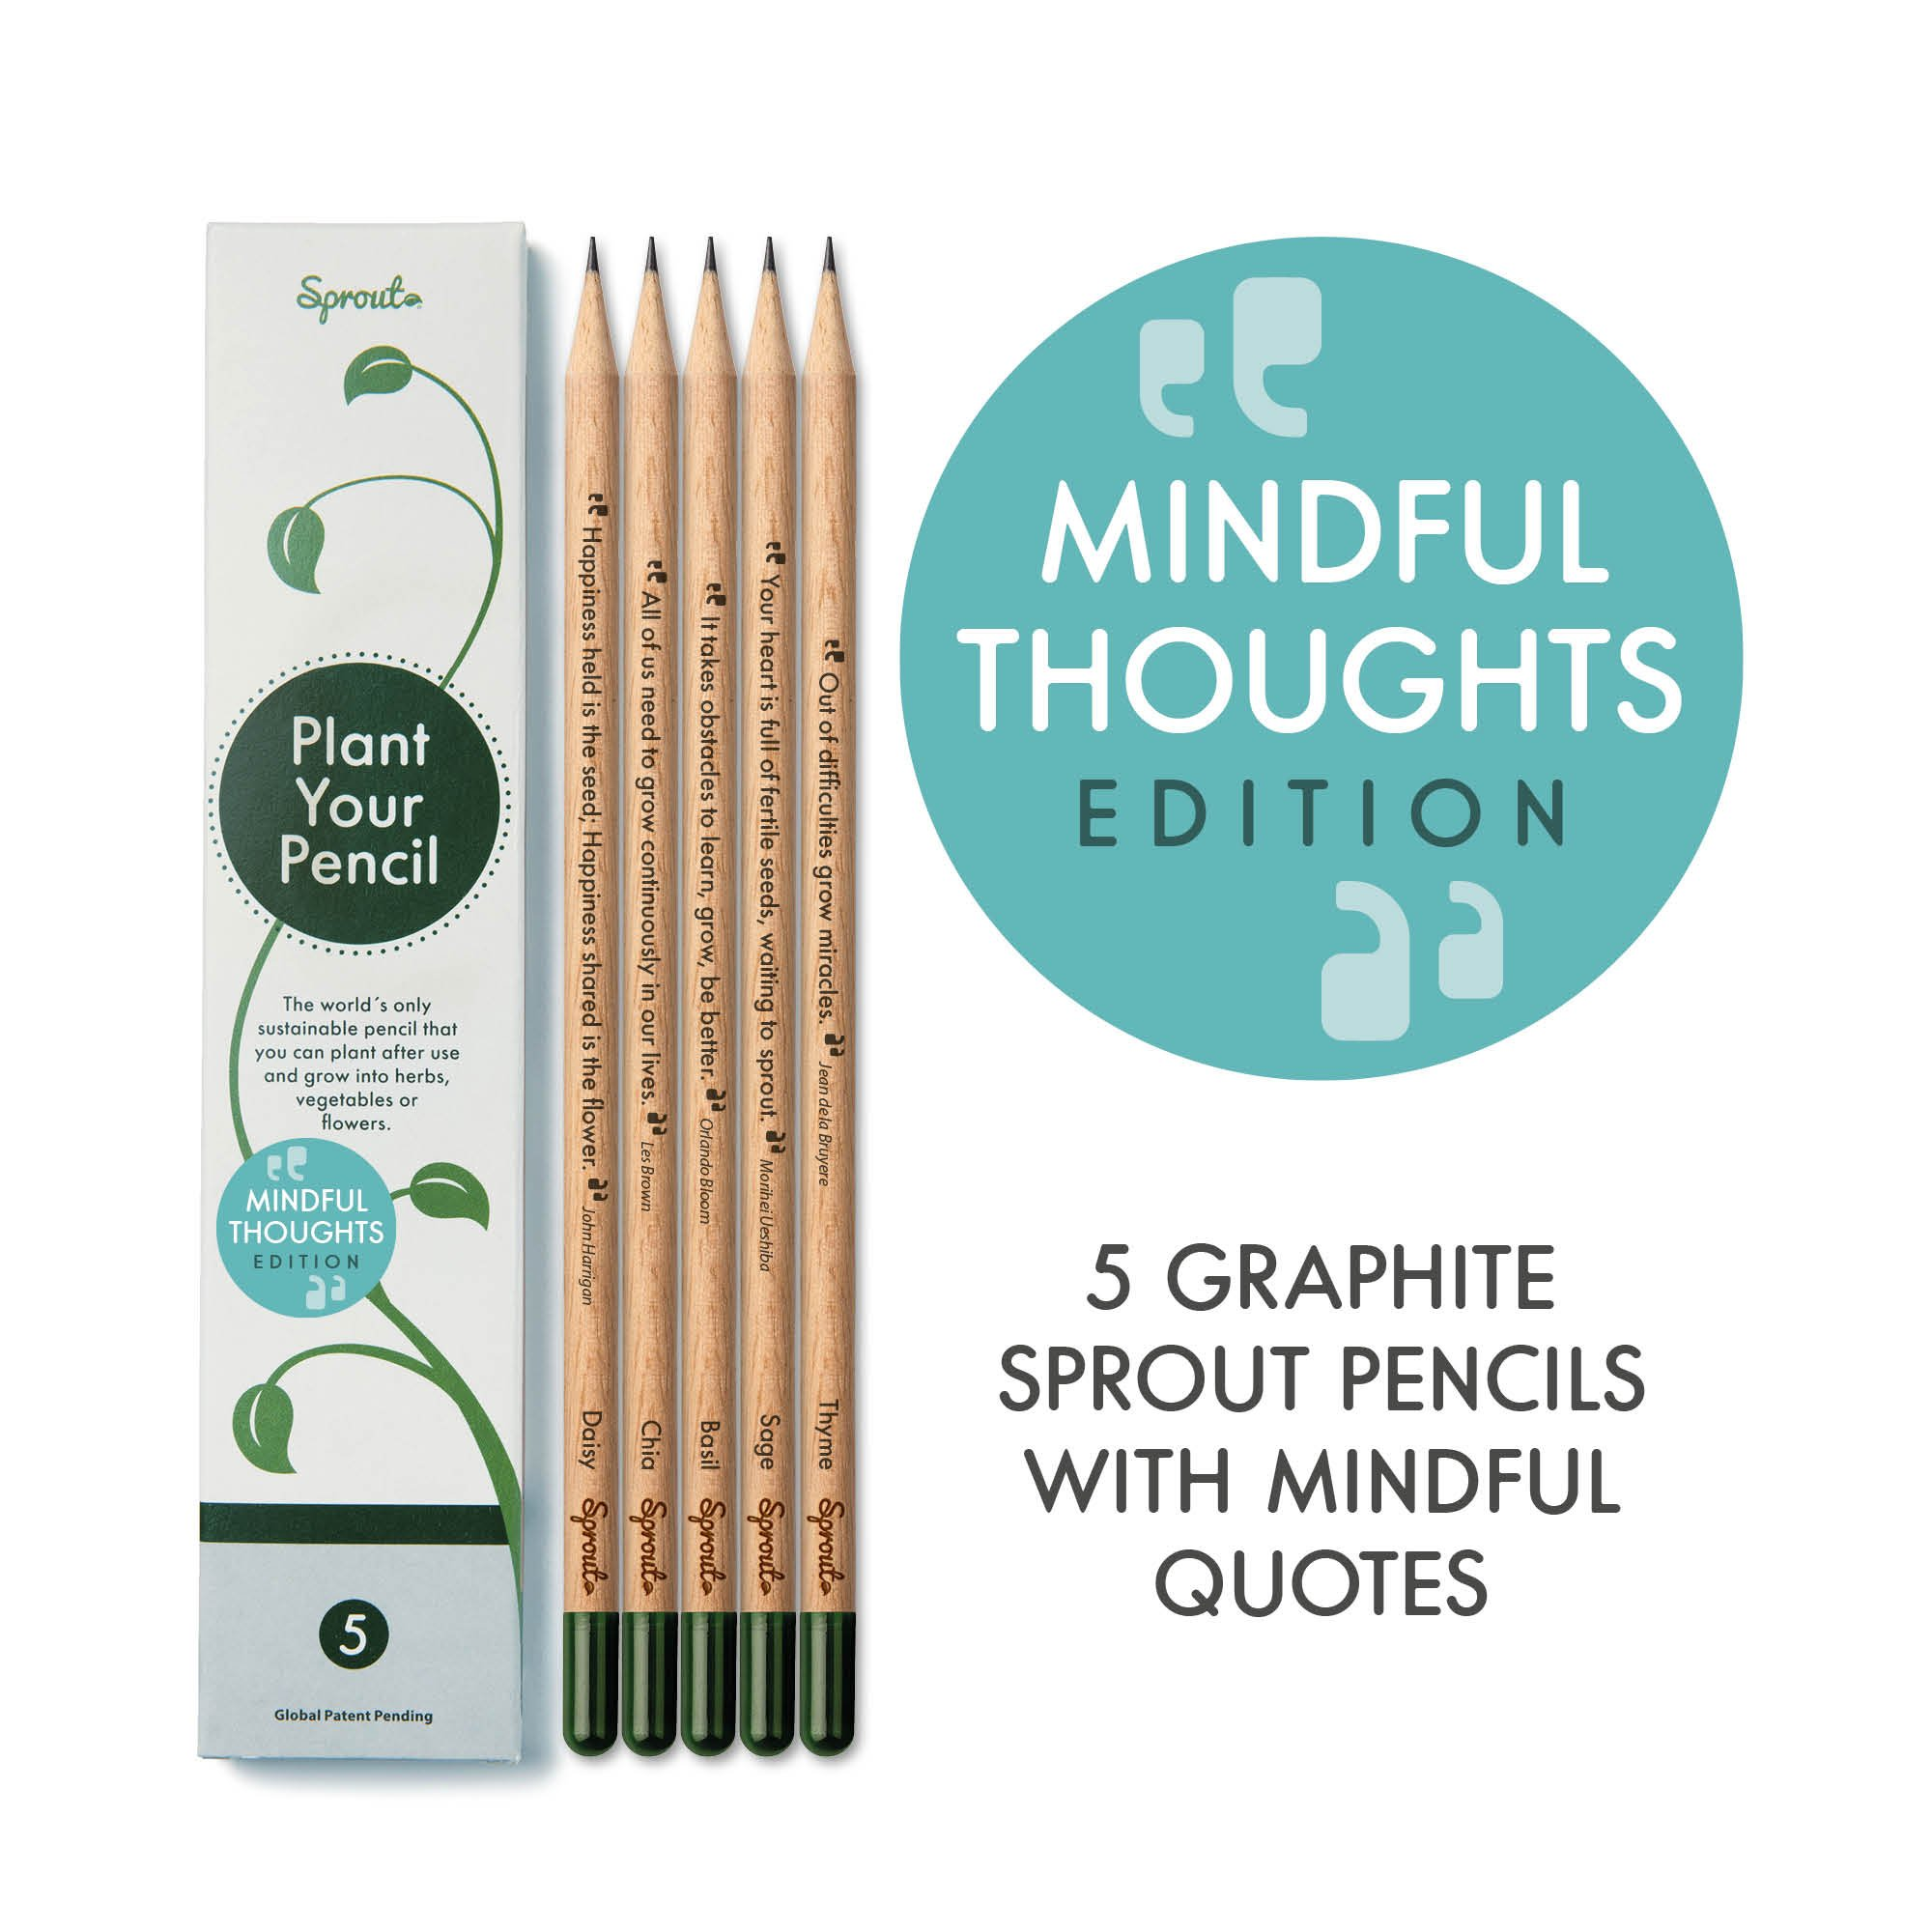 Sprout pencils - Mindful Thoughts Edition | Plantable Graphite Pencils with Seeds in eco-friendly Wood | 5 Pack | Gift set with herbs and flowers by Sprout